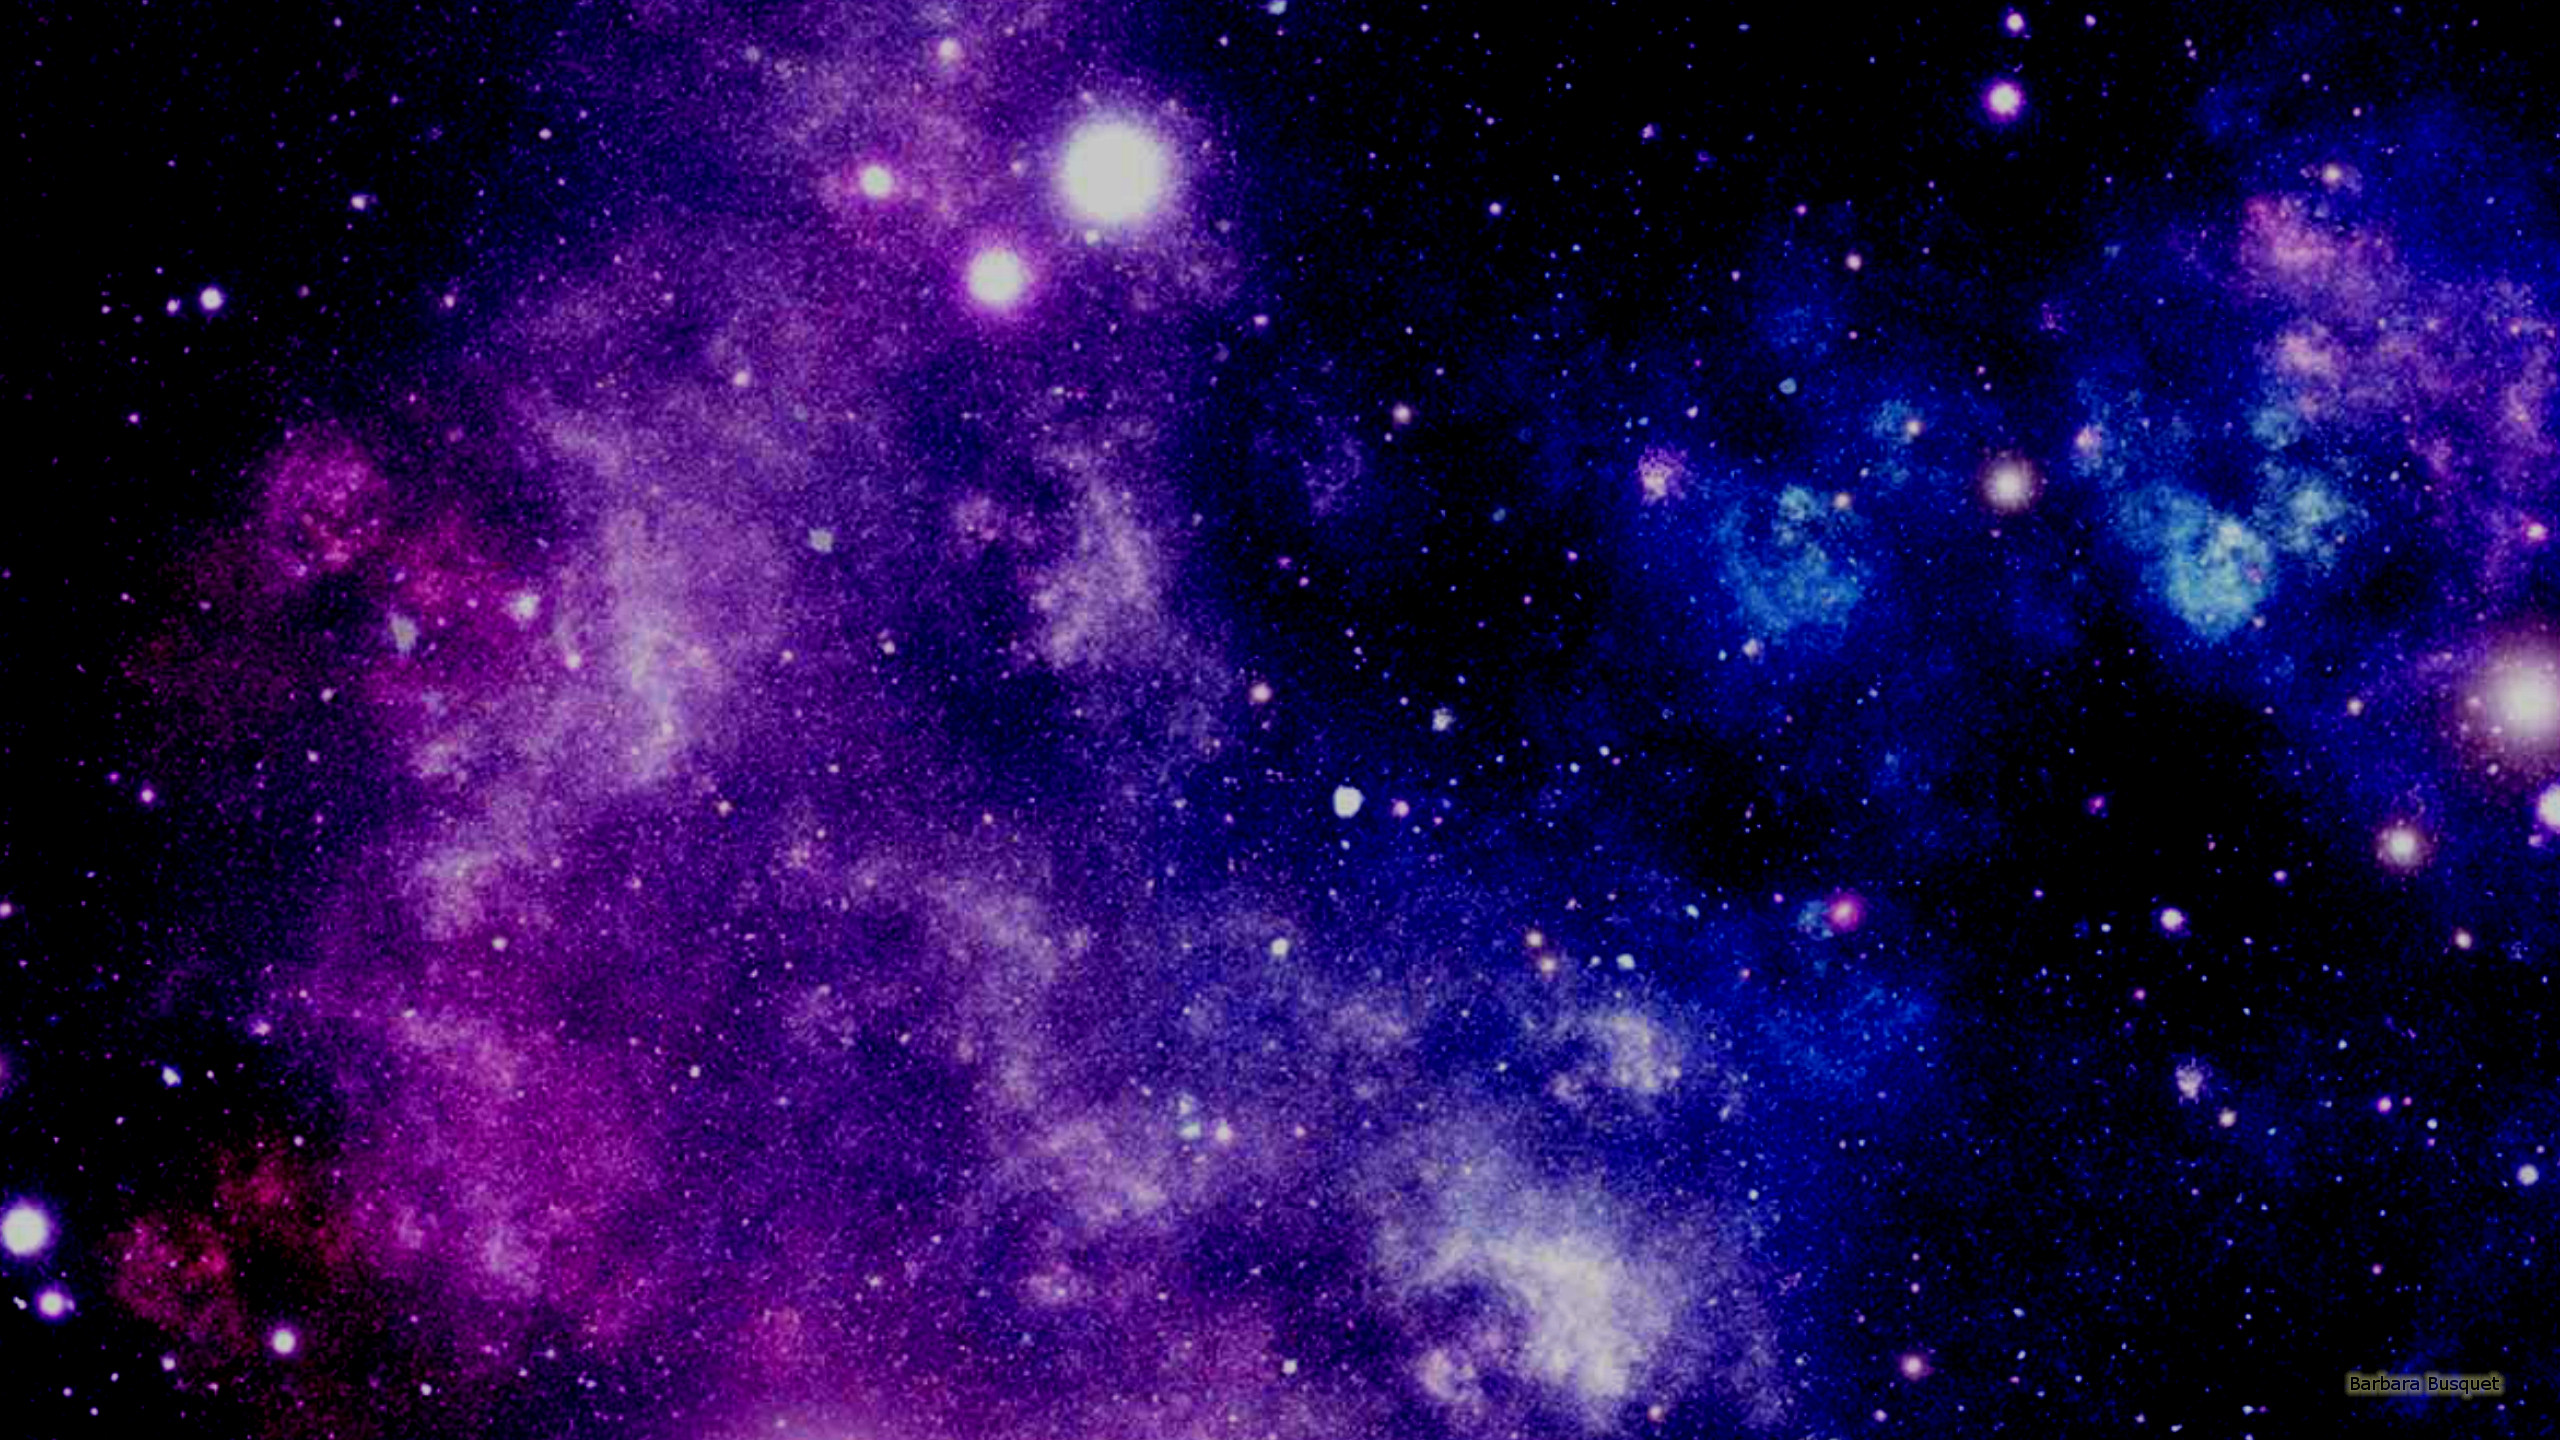 Purple Galaxy Wallpaper - WallpaperSafari